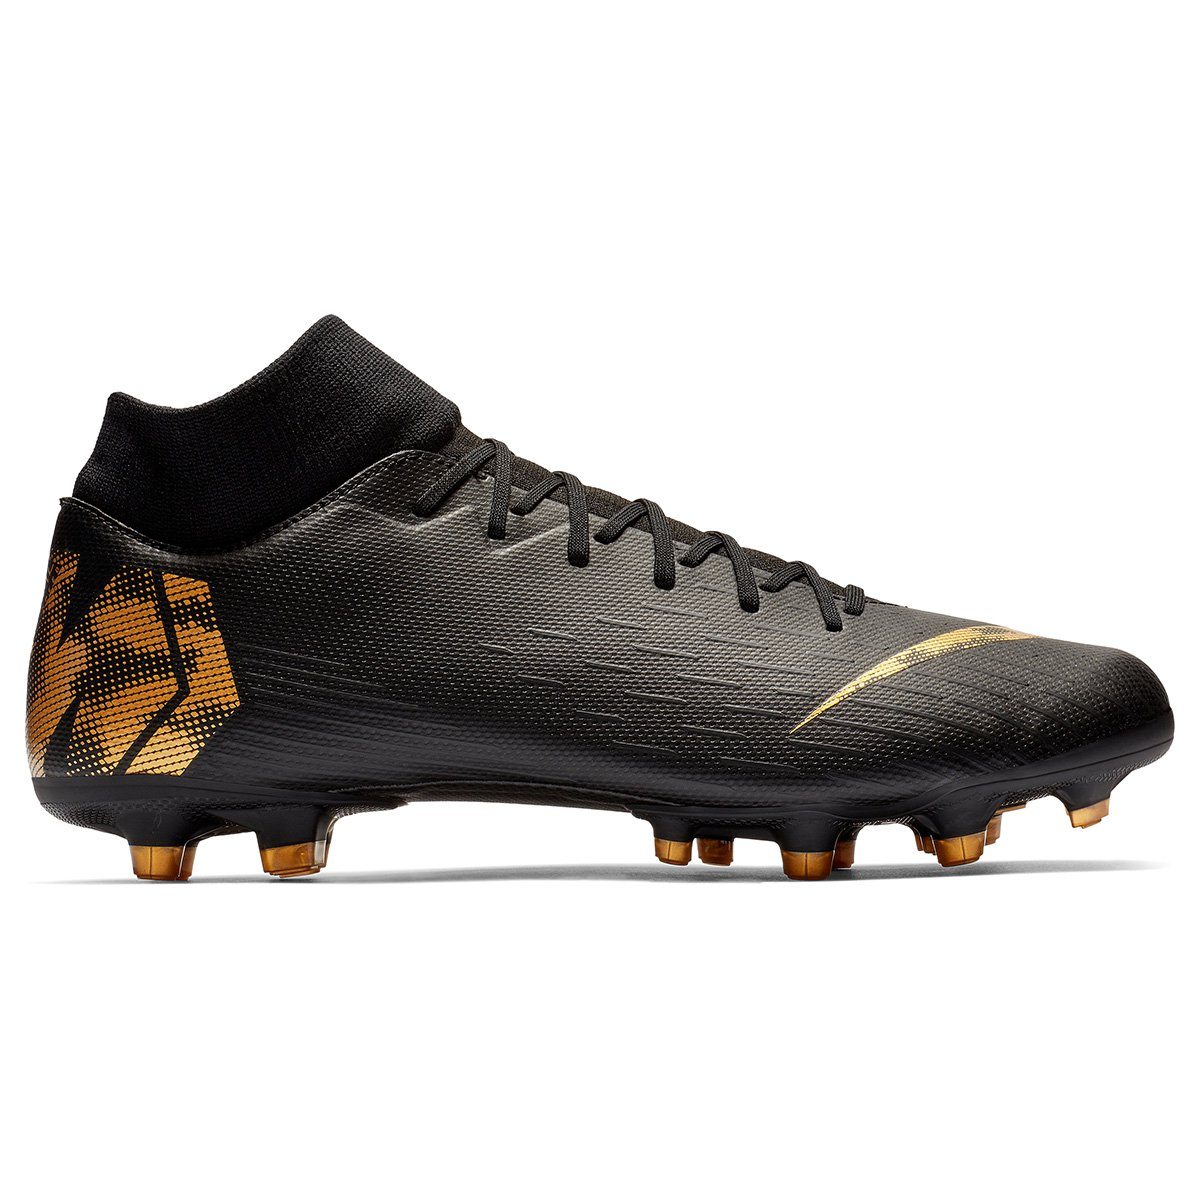 4f968a17d7 Chuteira Campo Nike Mercurial Superfly 6 Academy